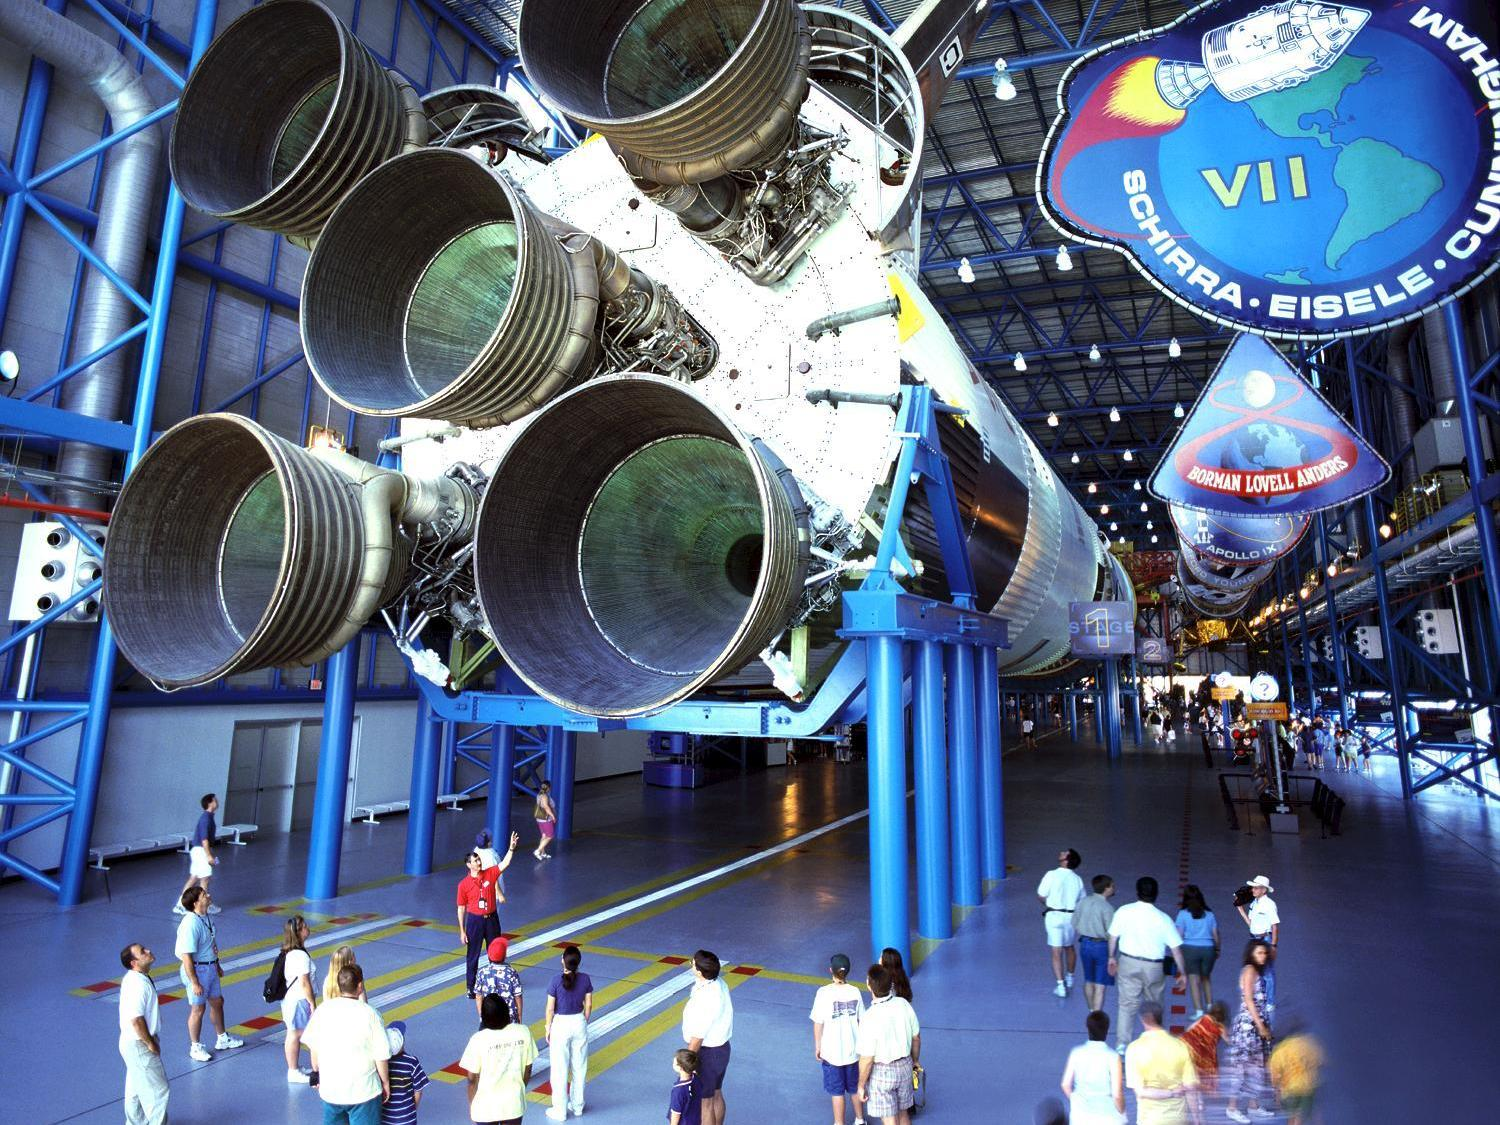 kennedy space center dine with an astronaut reviews - photo #10